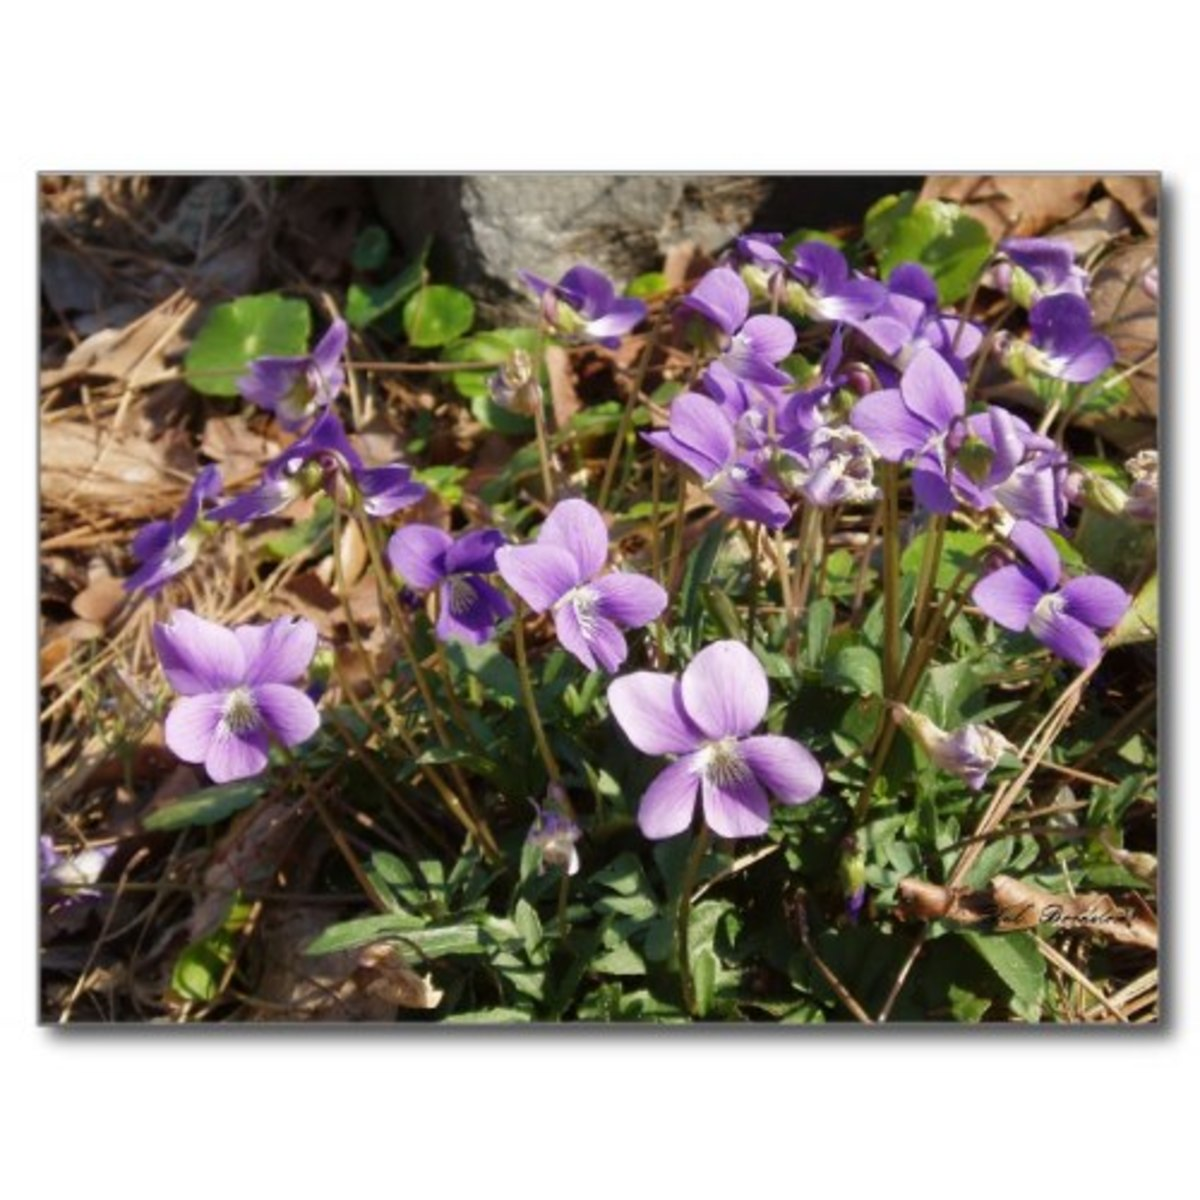 louisiana-native-violets-viola